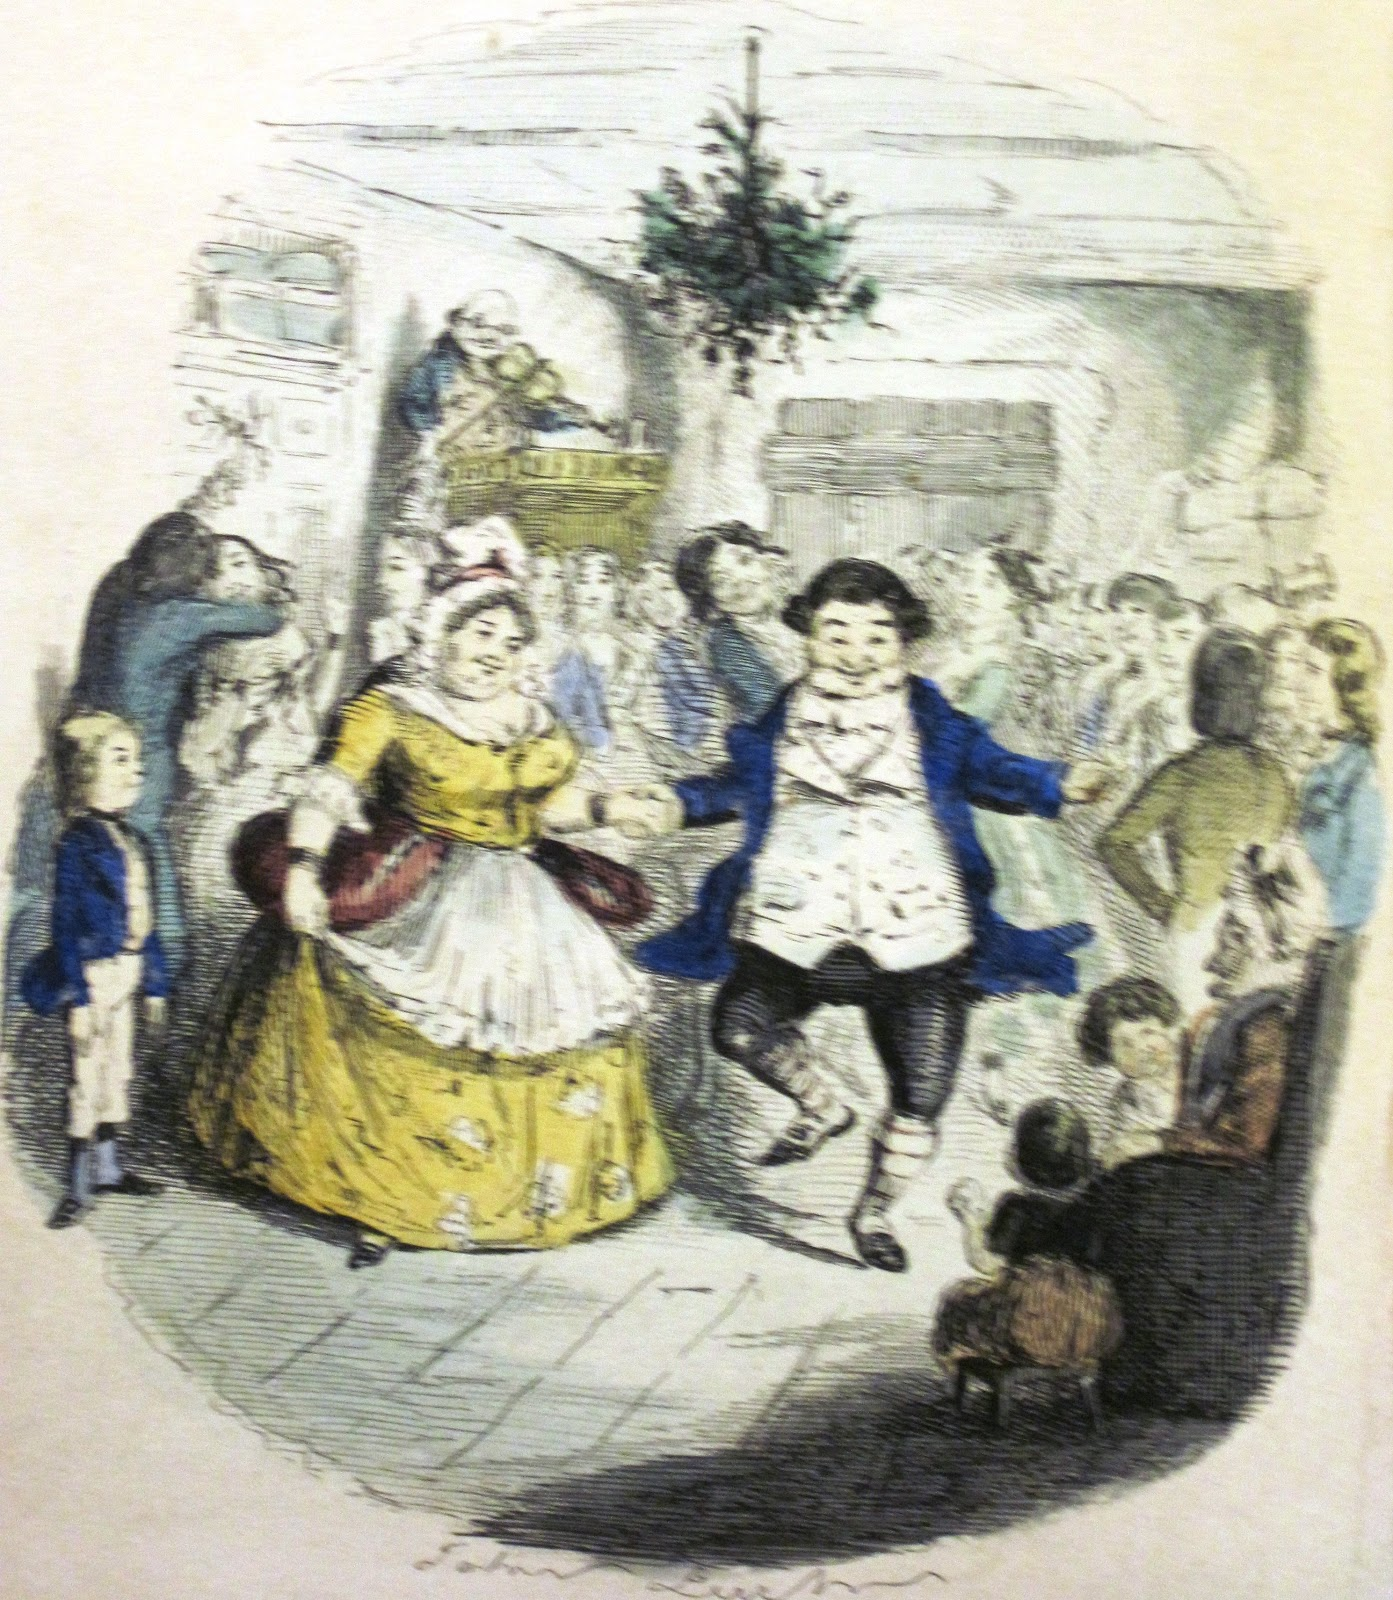 12 Best A Christmas Carol Images On Pinterest: Clements Library Chronicles: Today In History: A Christmas